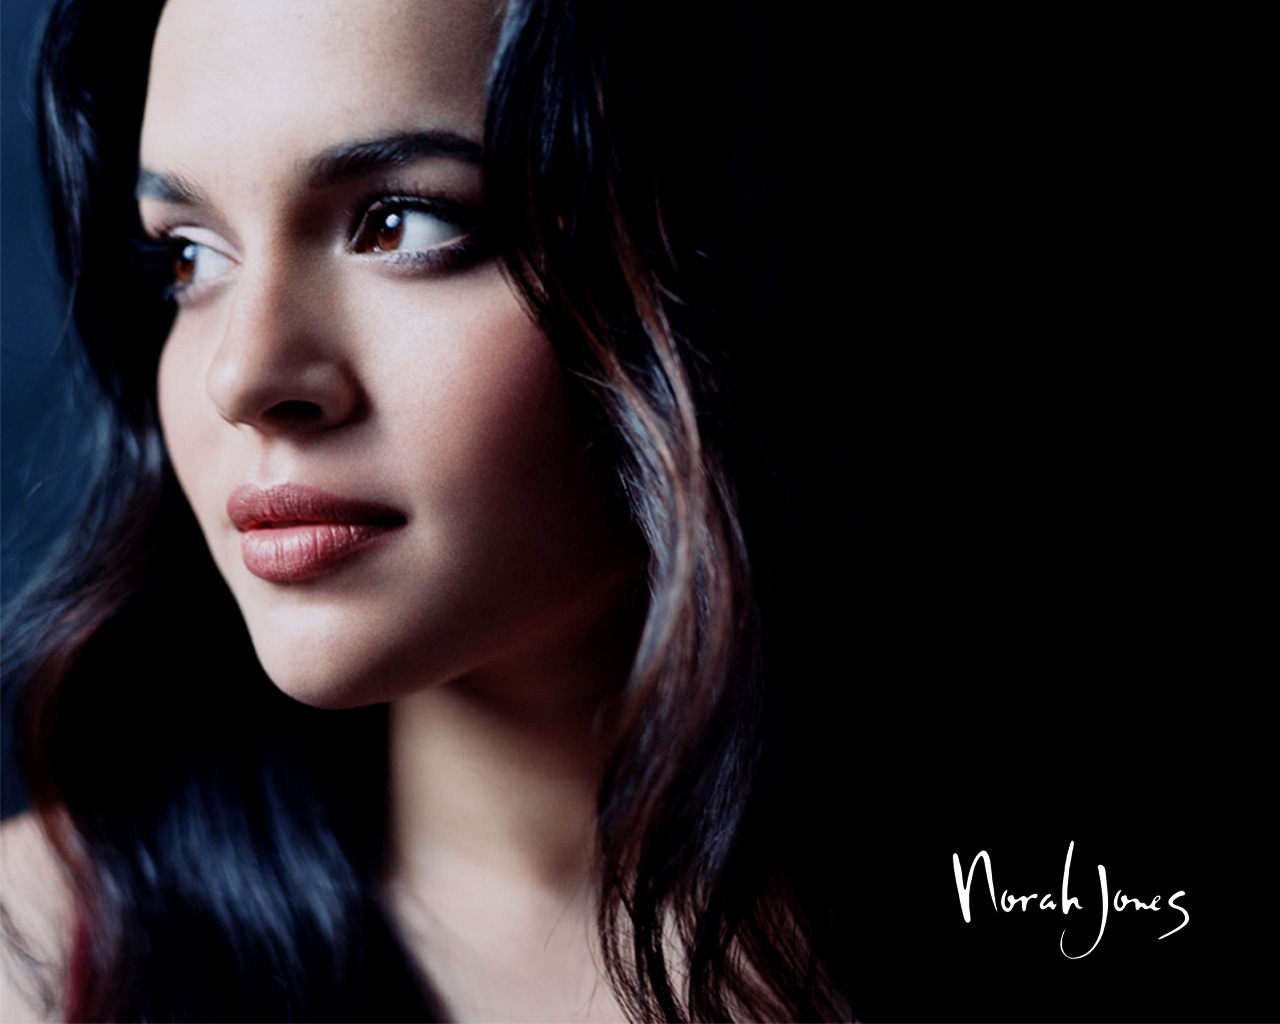 Norah Jones Wallpaper #252326 - Resolution 1280x1024 px